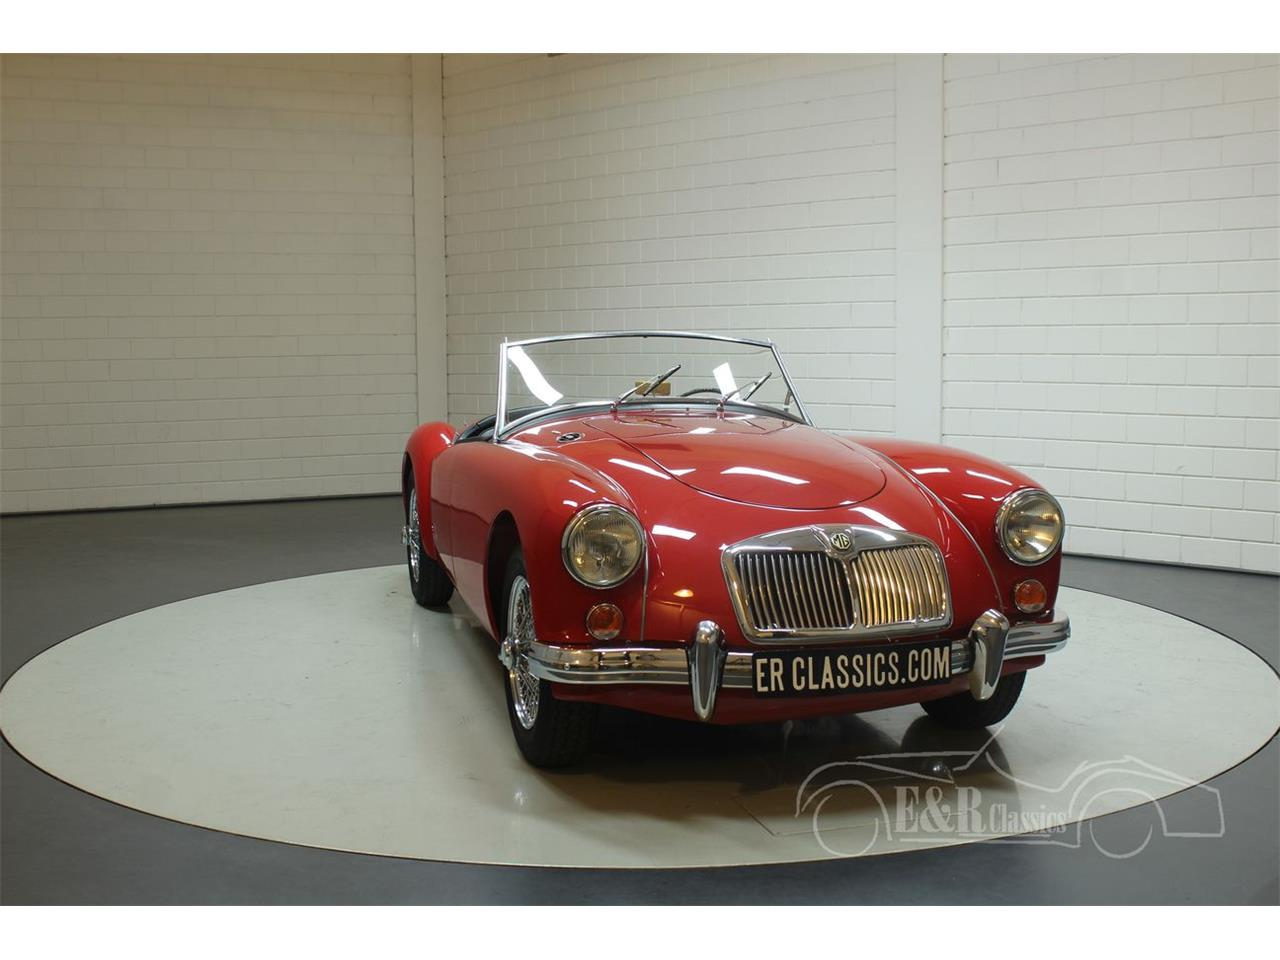 Large Picture of Classic 1959 MG MGA located in Waalwijk - Keine Angabe - Offered by E & R Classics - PGST